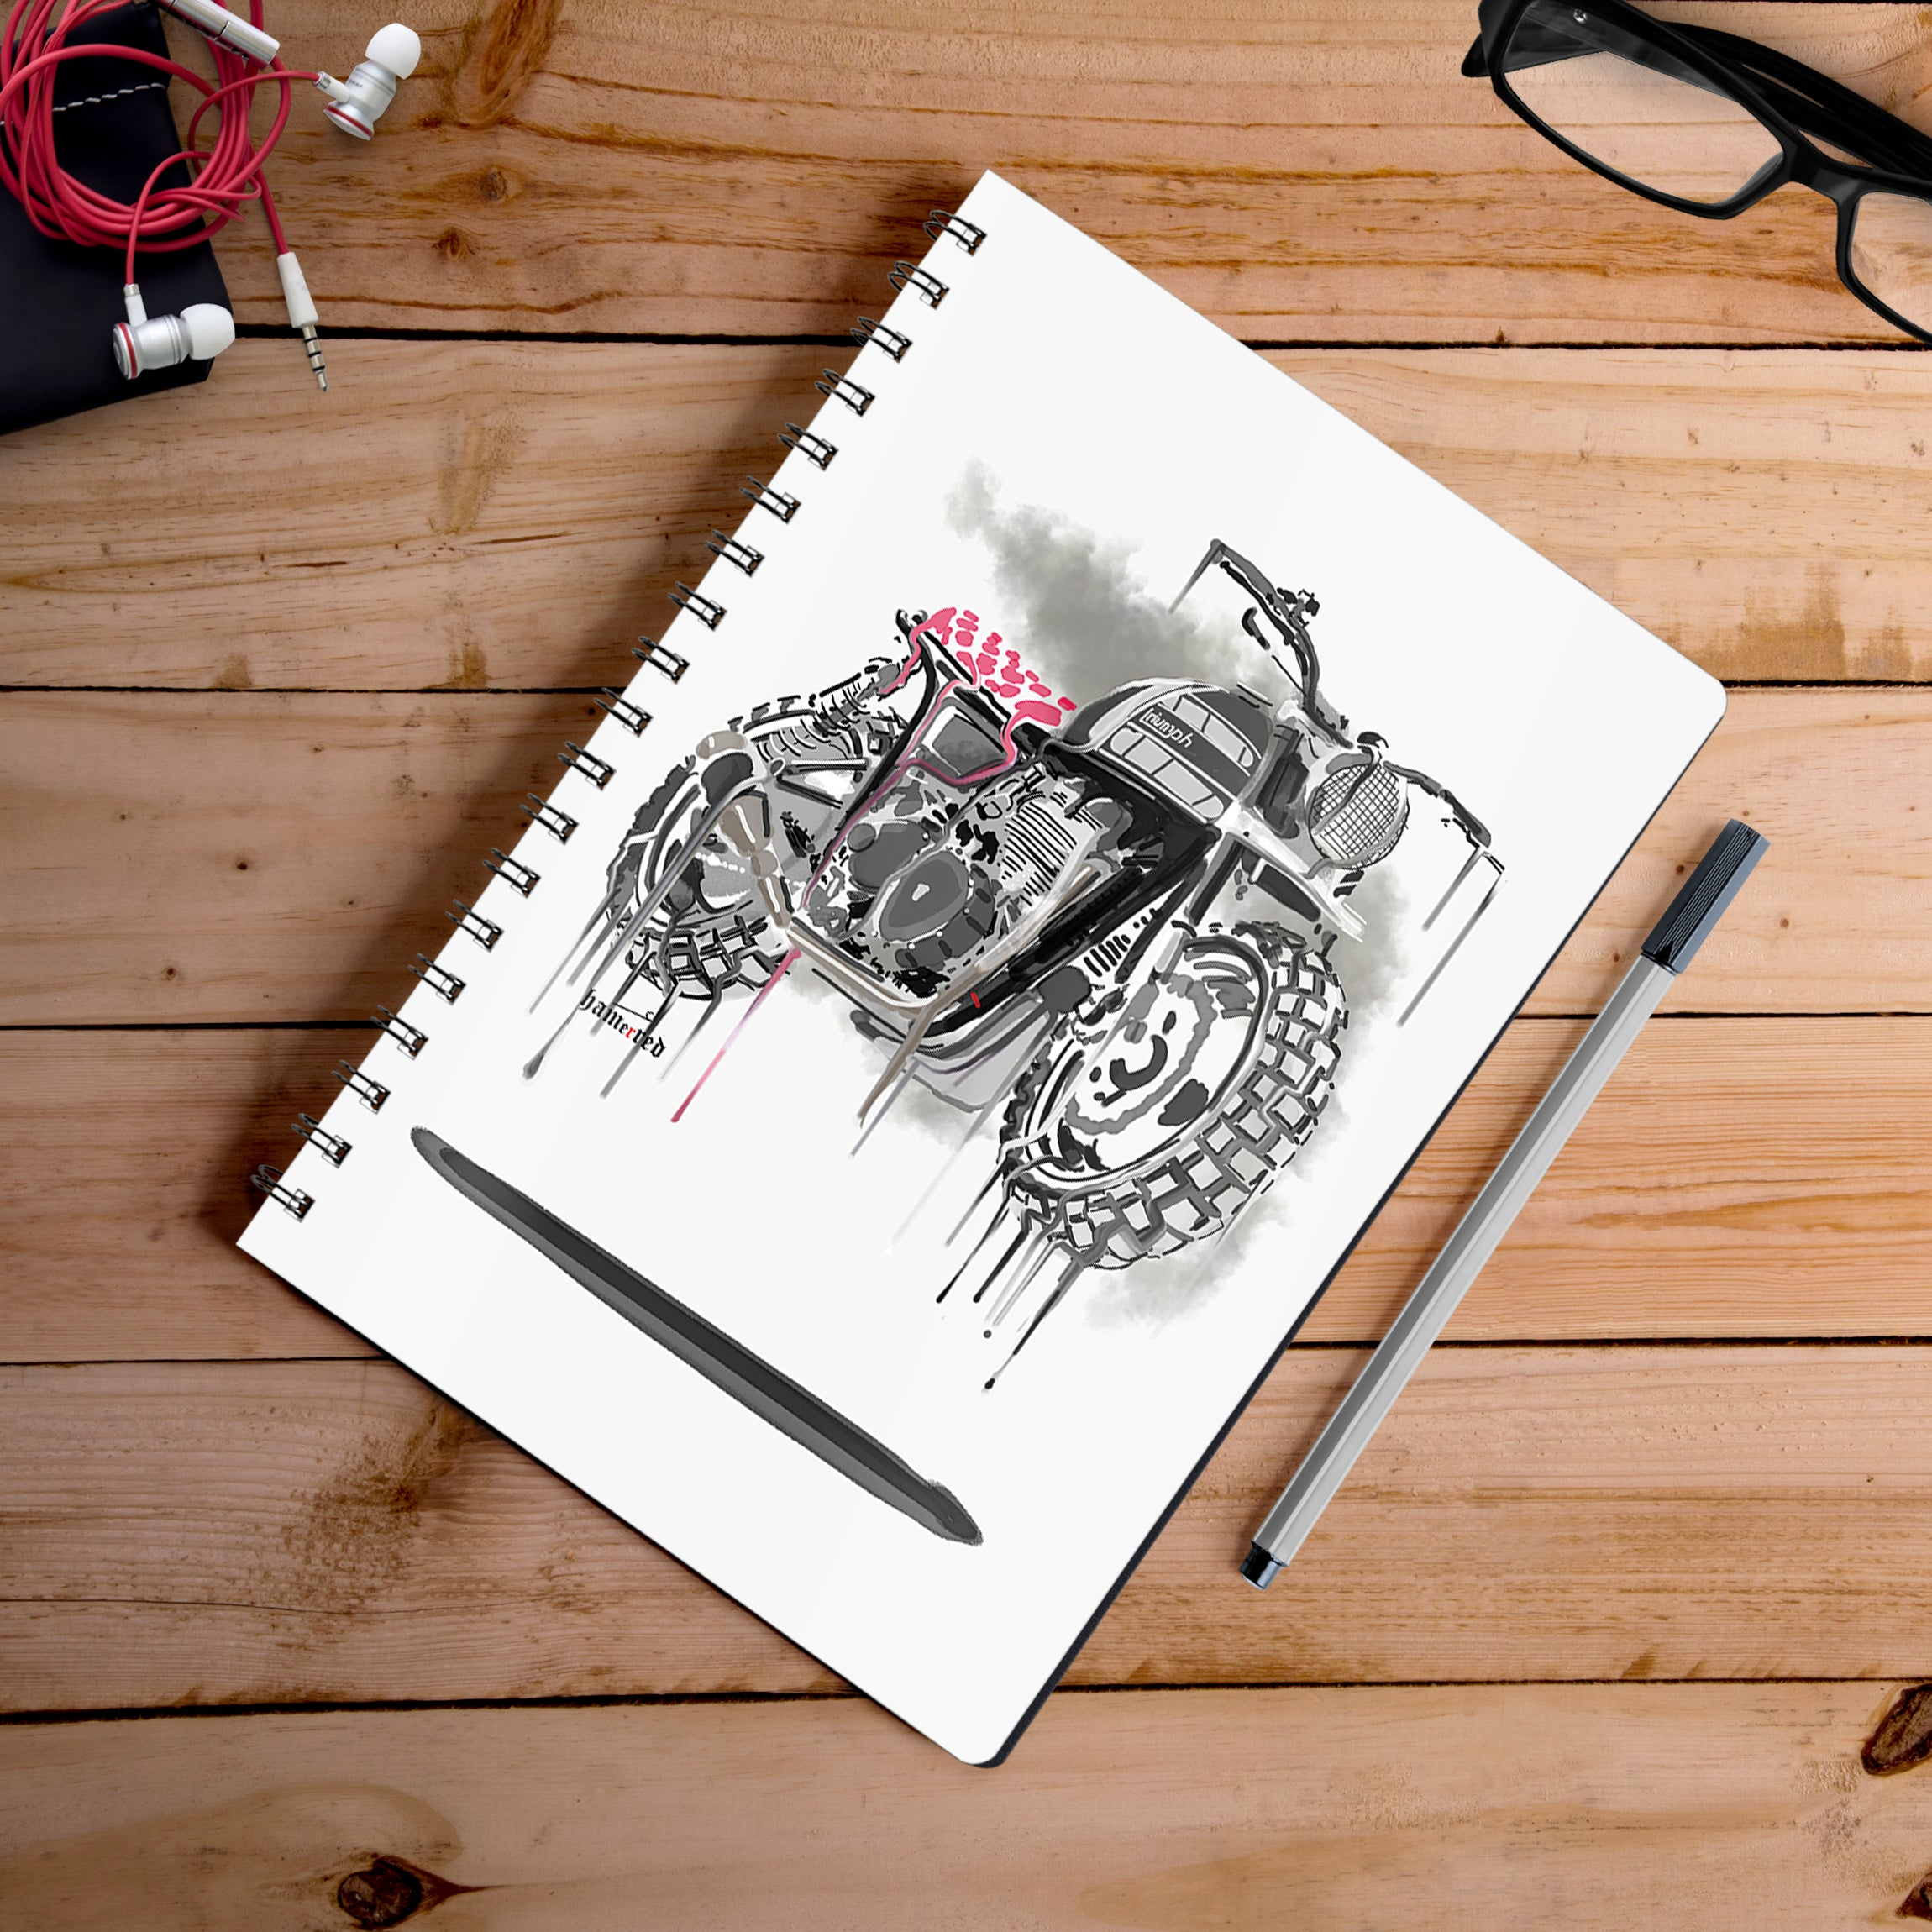 Buy-Brutise-Down-And-Out-Artist-Hamerred49-Notebook | 100kmph